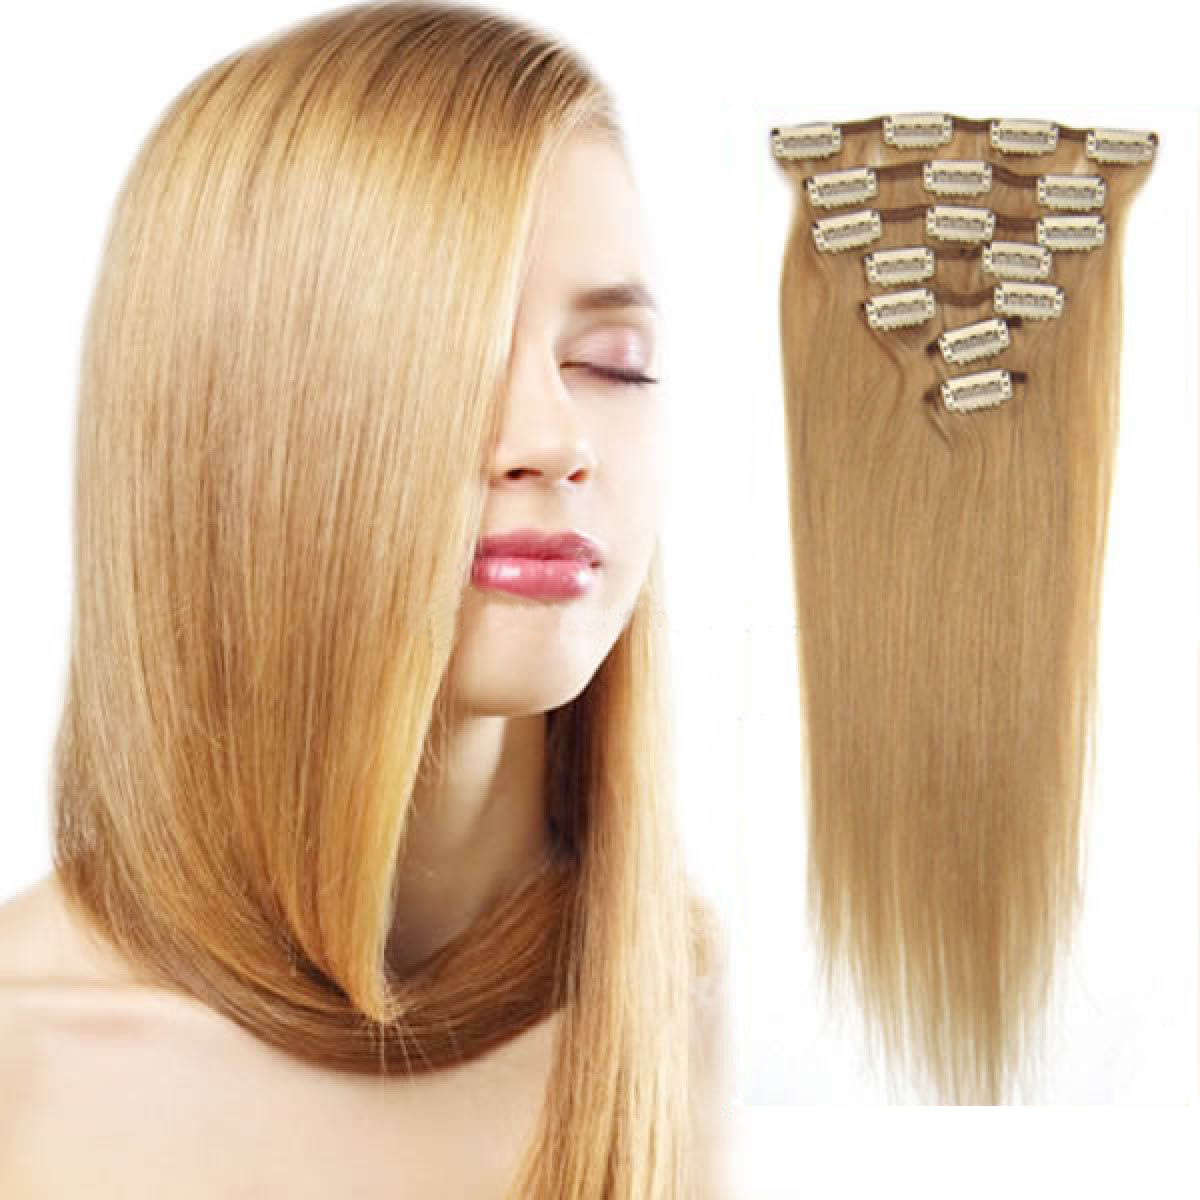 18 Inch 27 Strawberry Blonde Clip In Remy Human Hair Extensions 7pcs